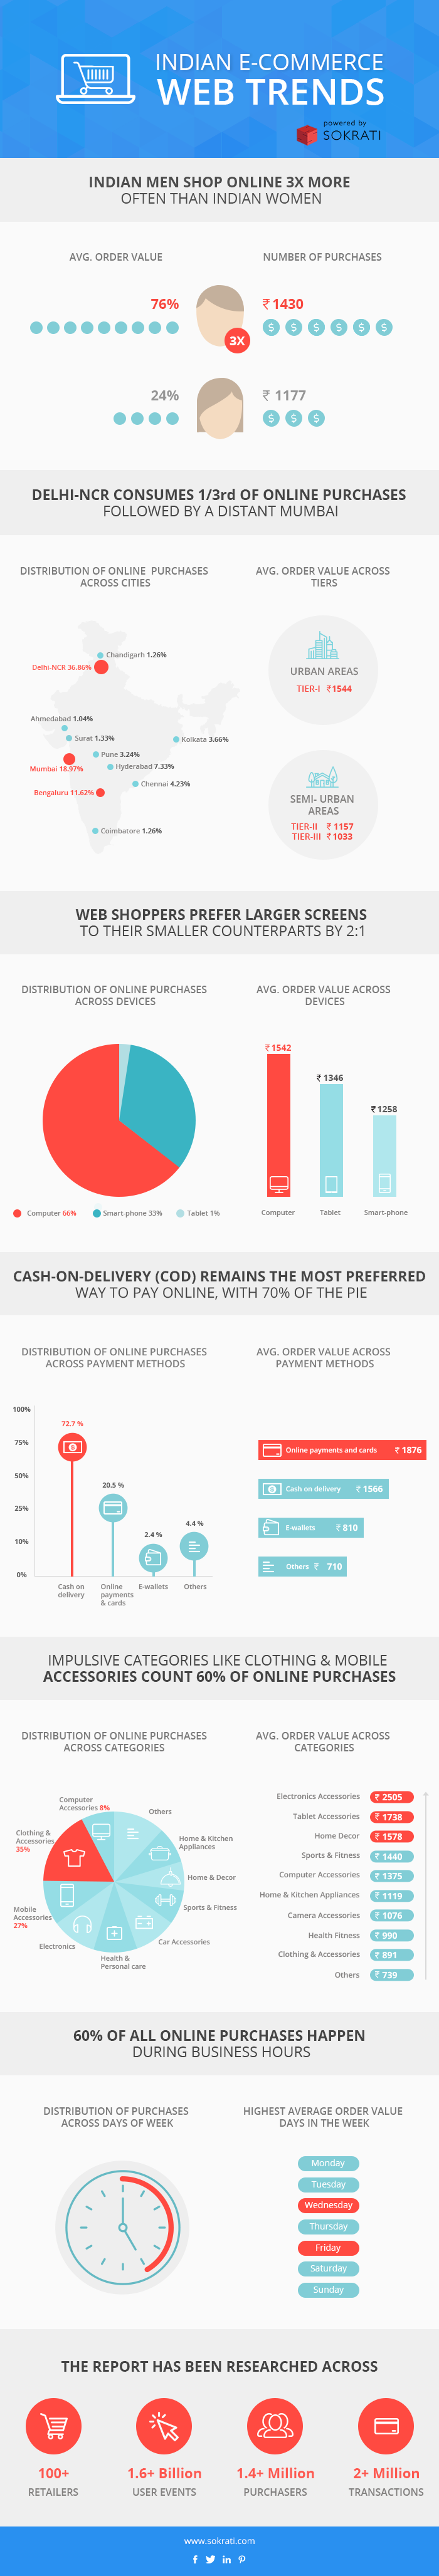 e commerce in india the current